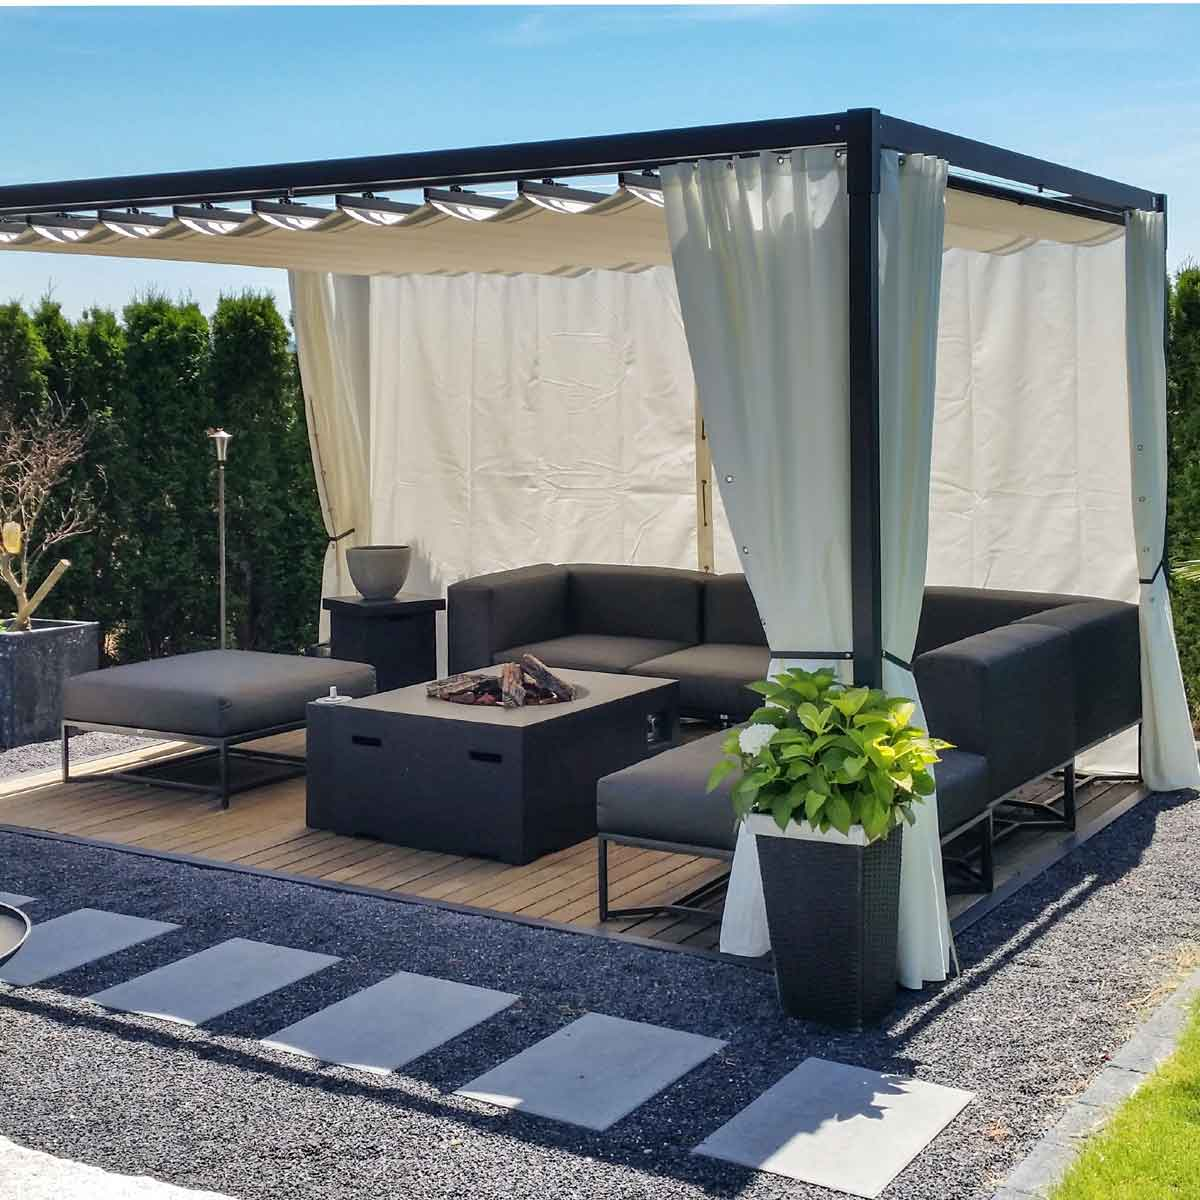 Gazebo MOOD UP 300×400 cm